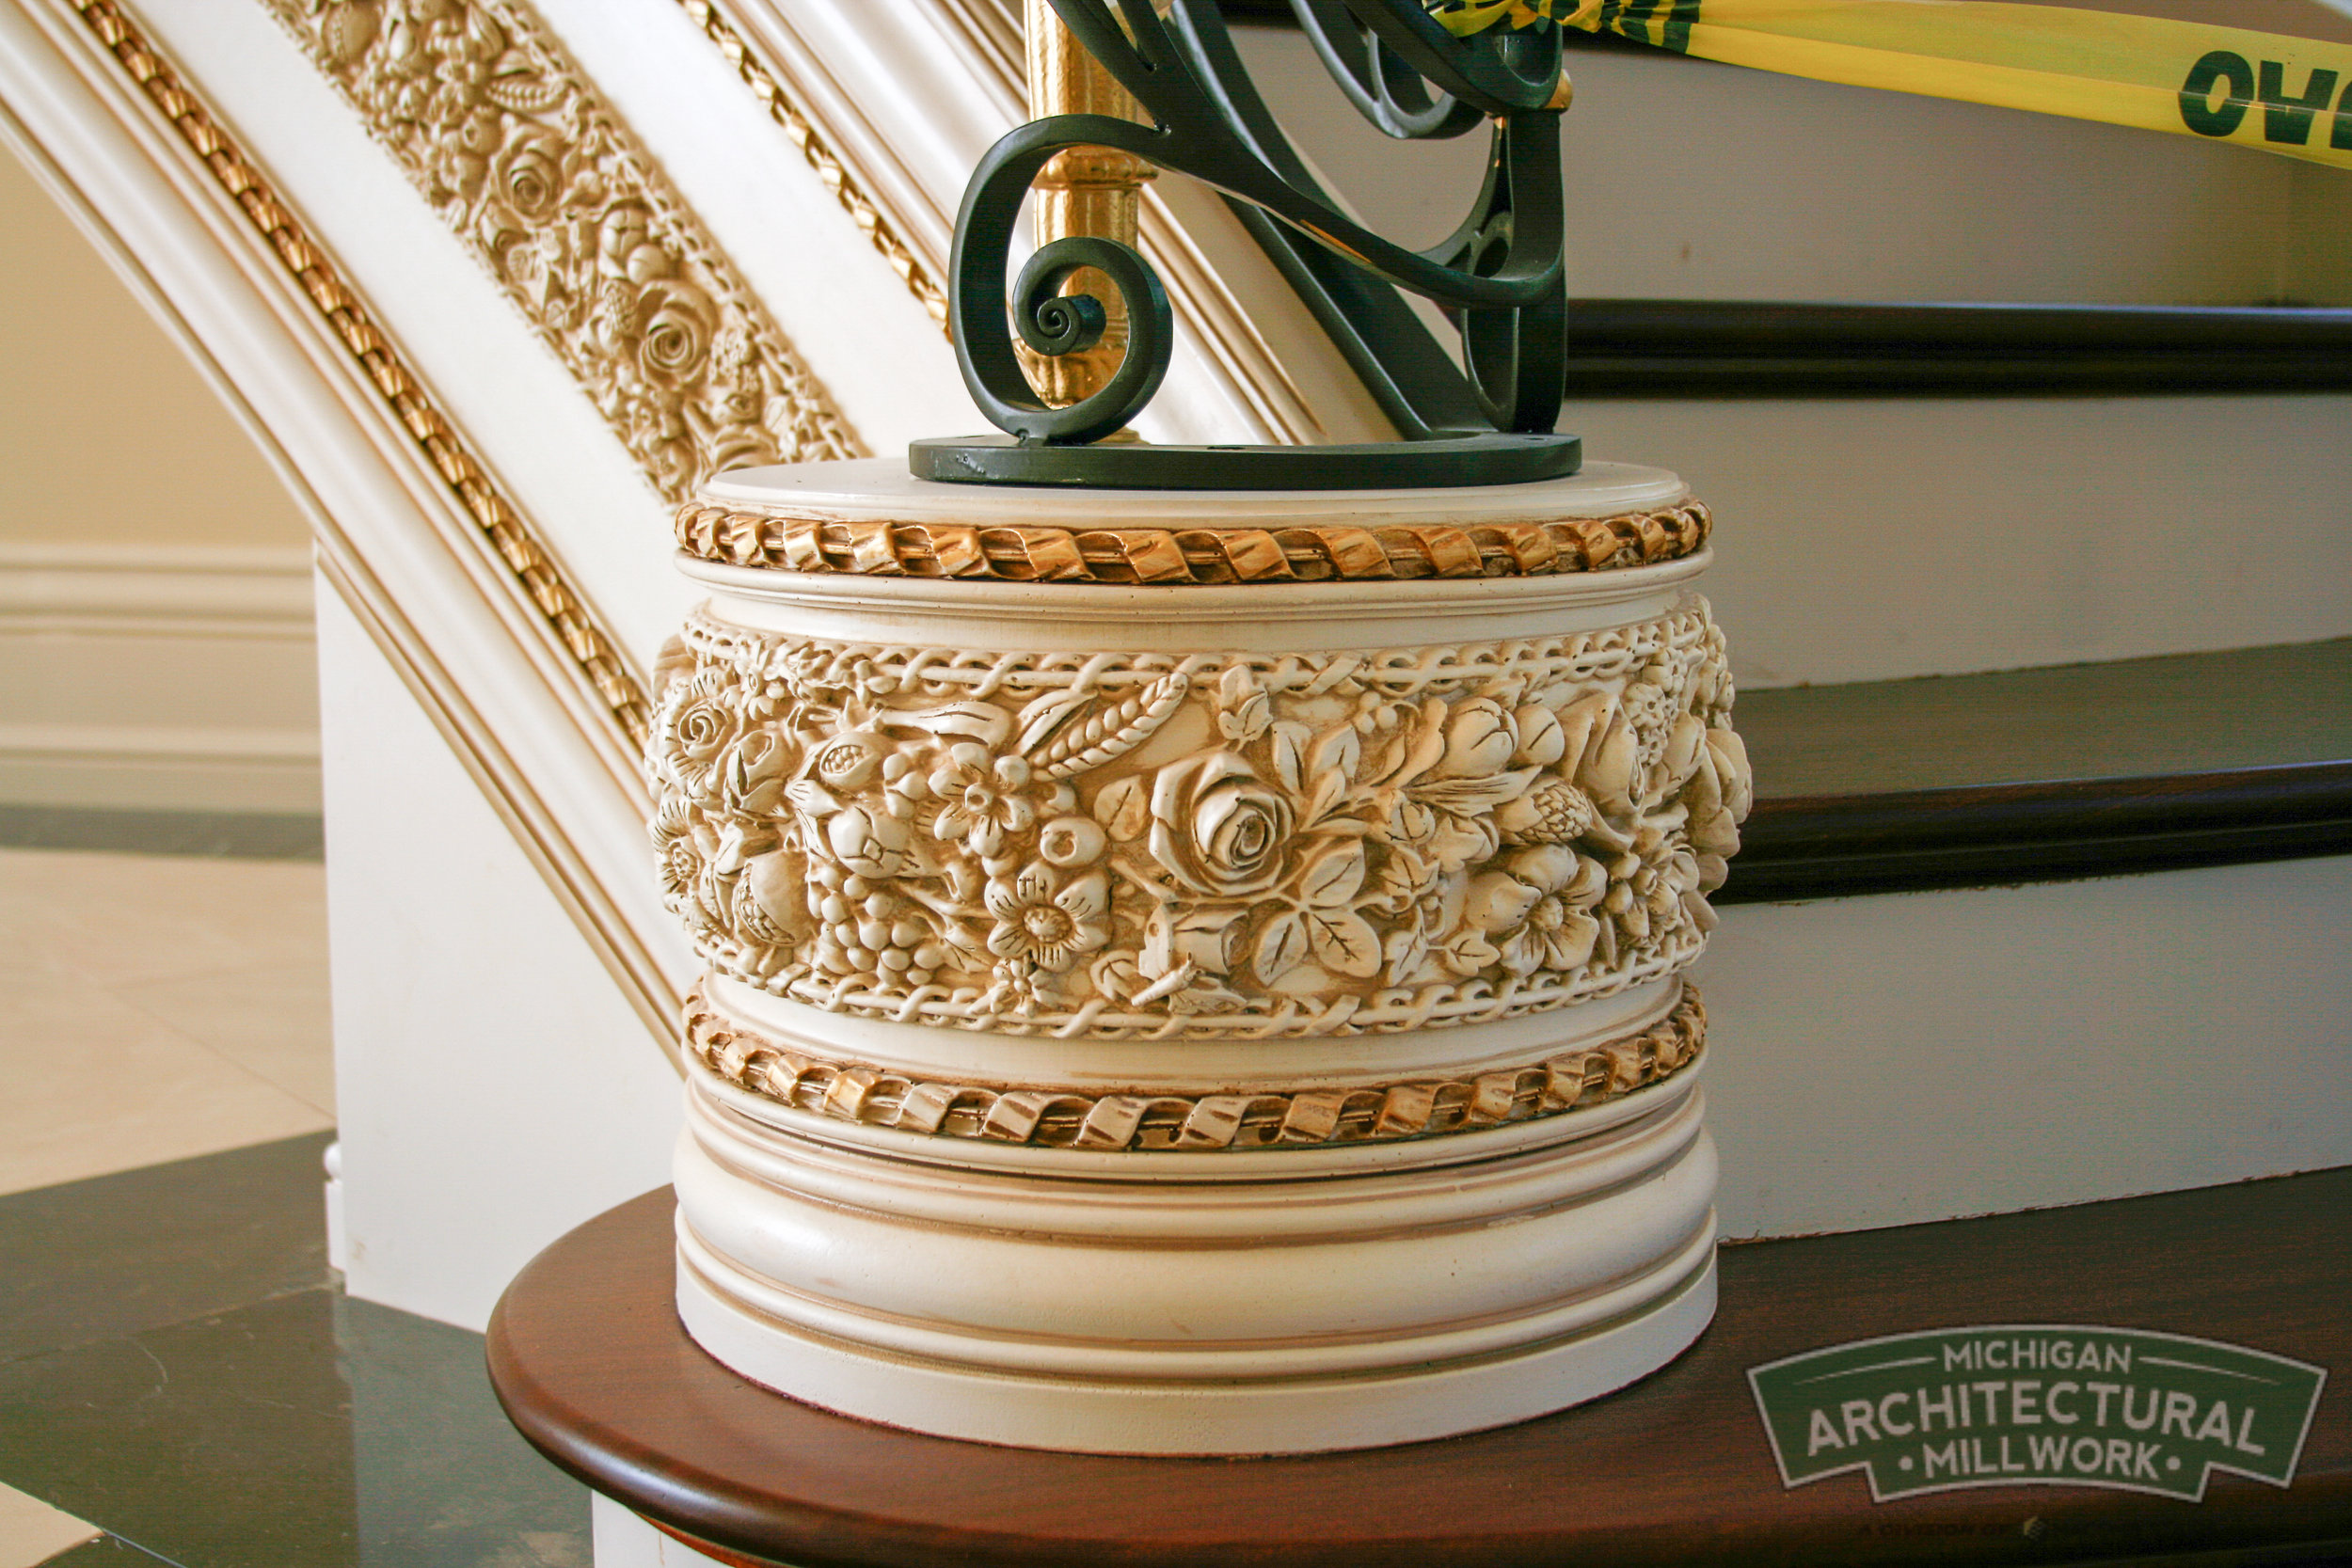 Michigan Architectural Millwork- Moulding and Millwork Photo-119.jpg